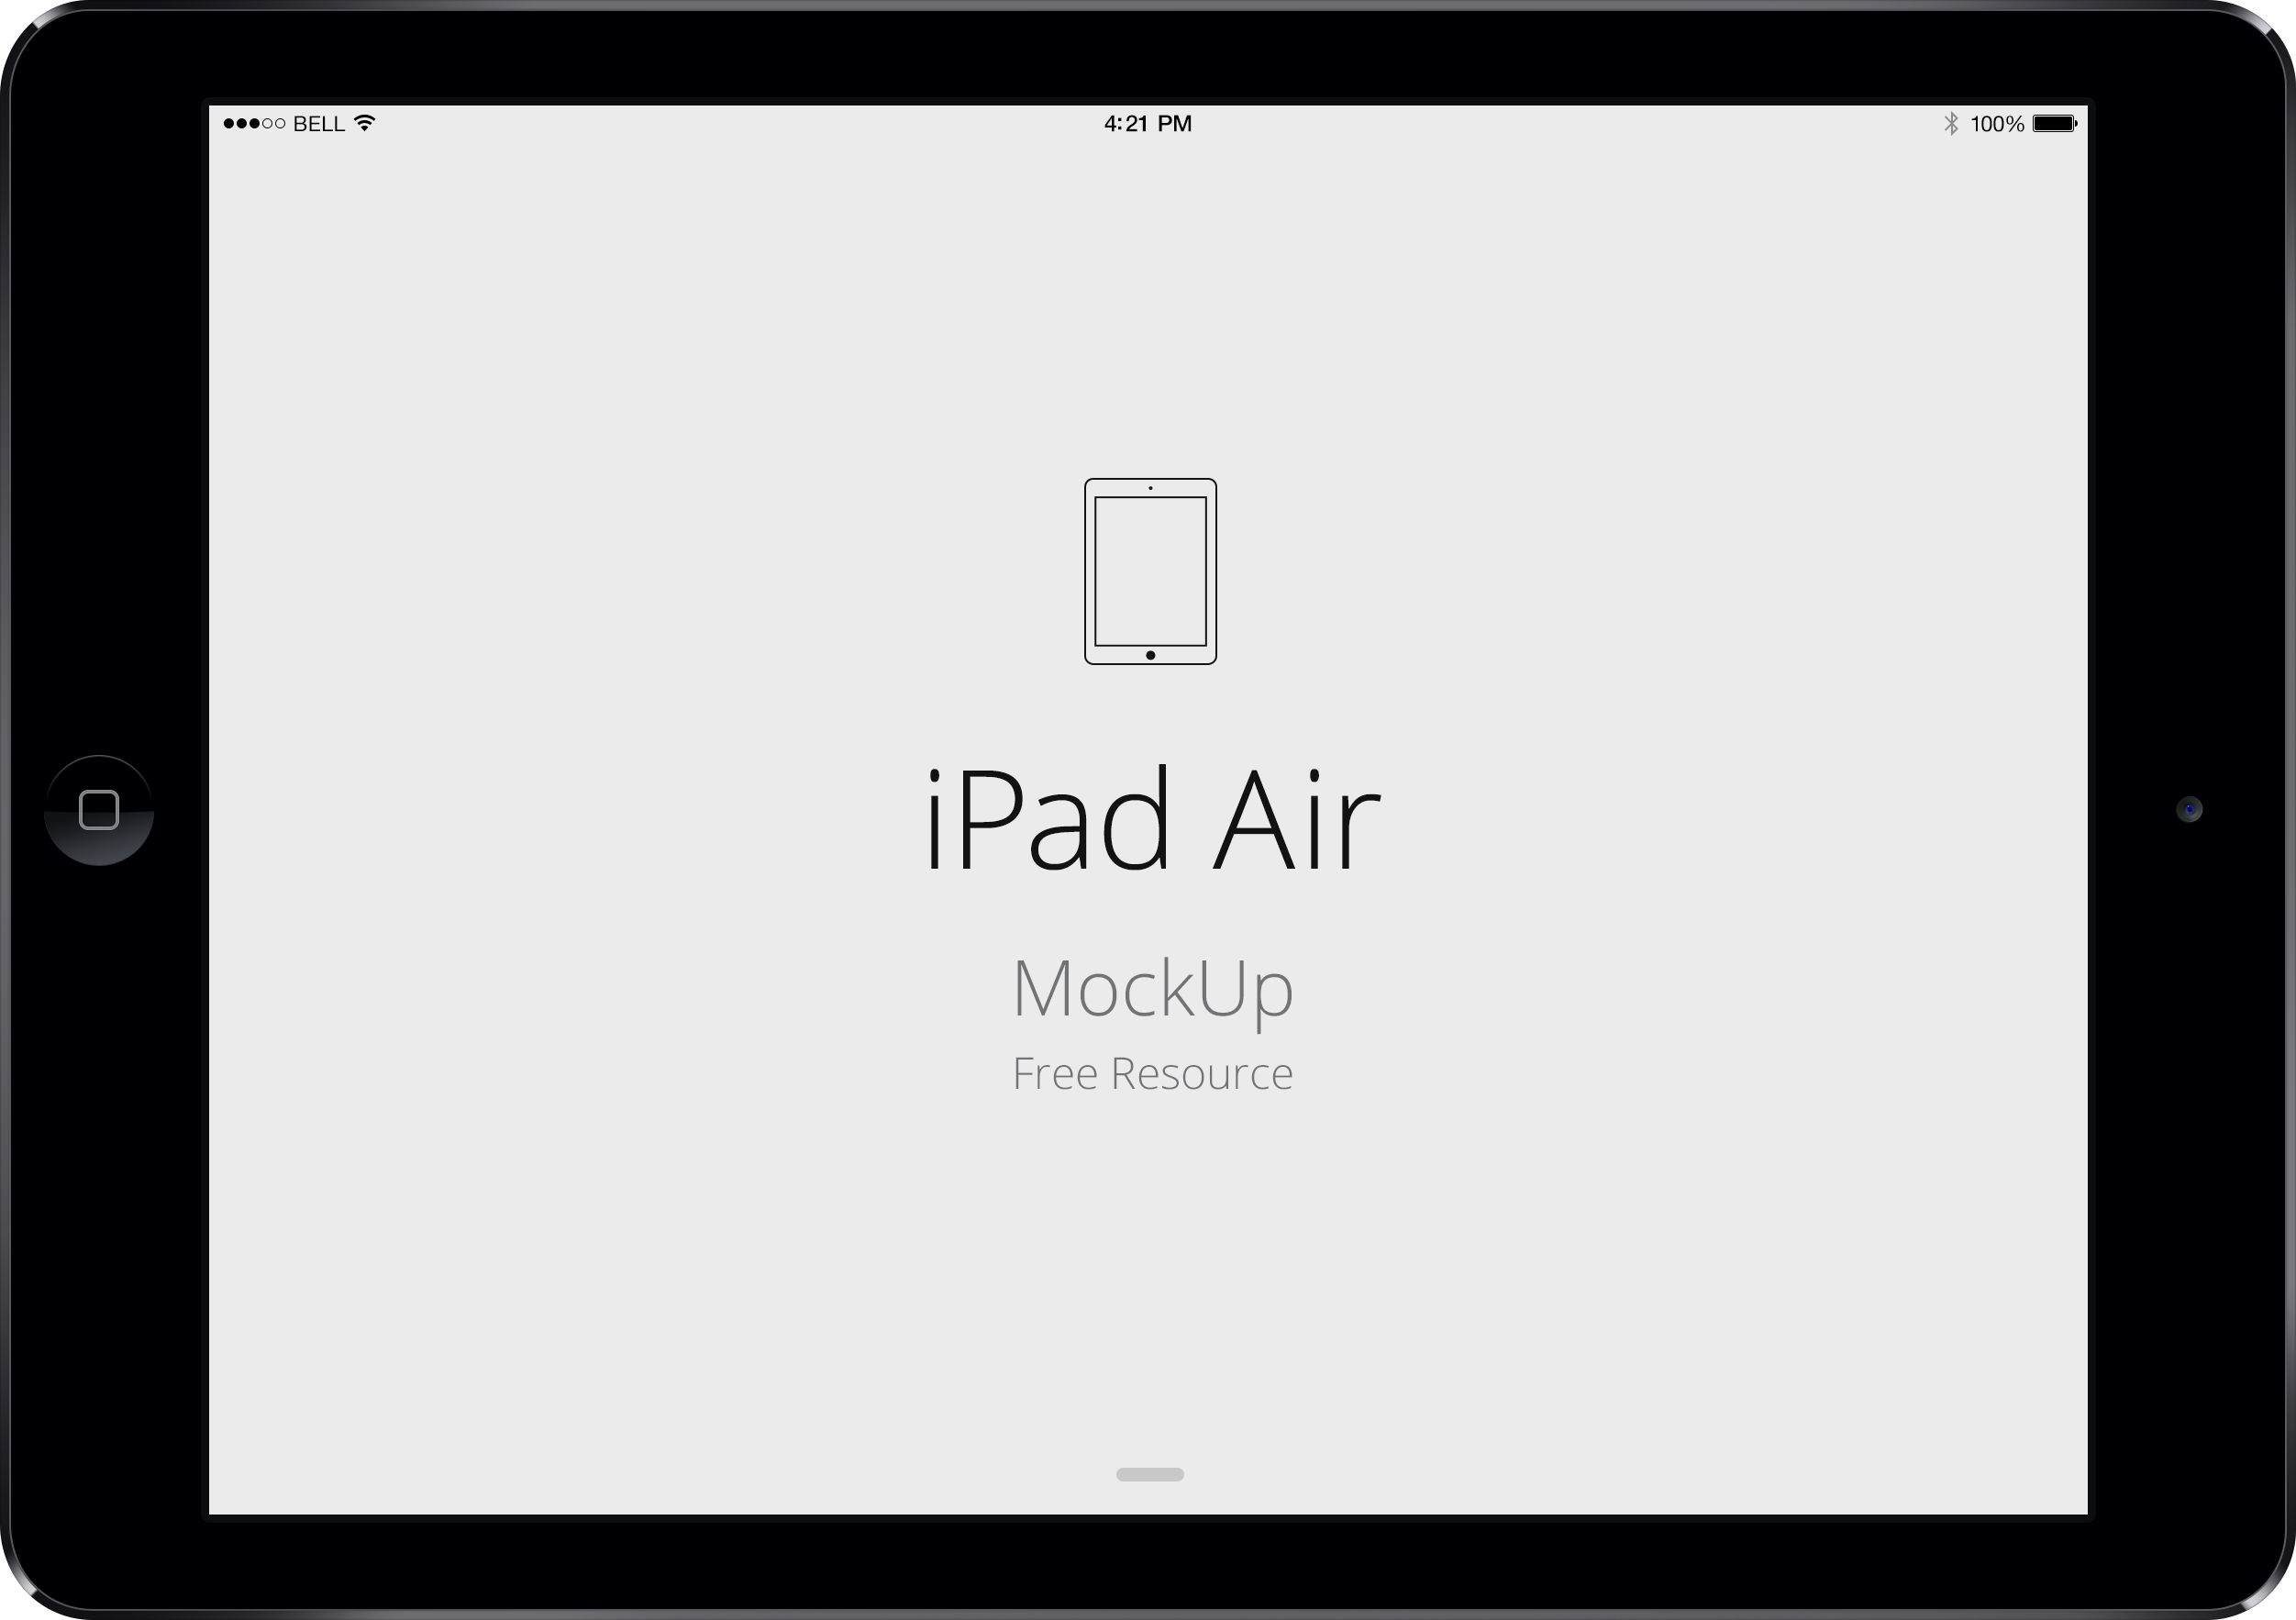 Ipad Air Mockup Png 5 Png Image